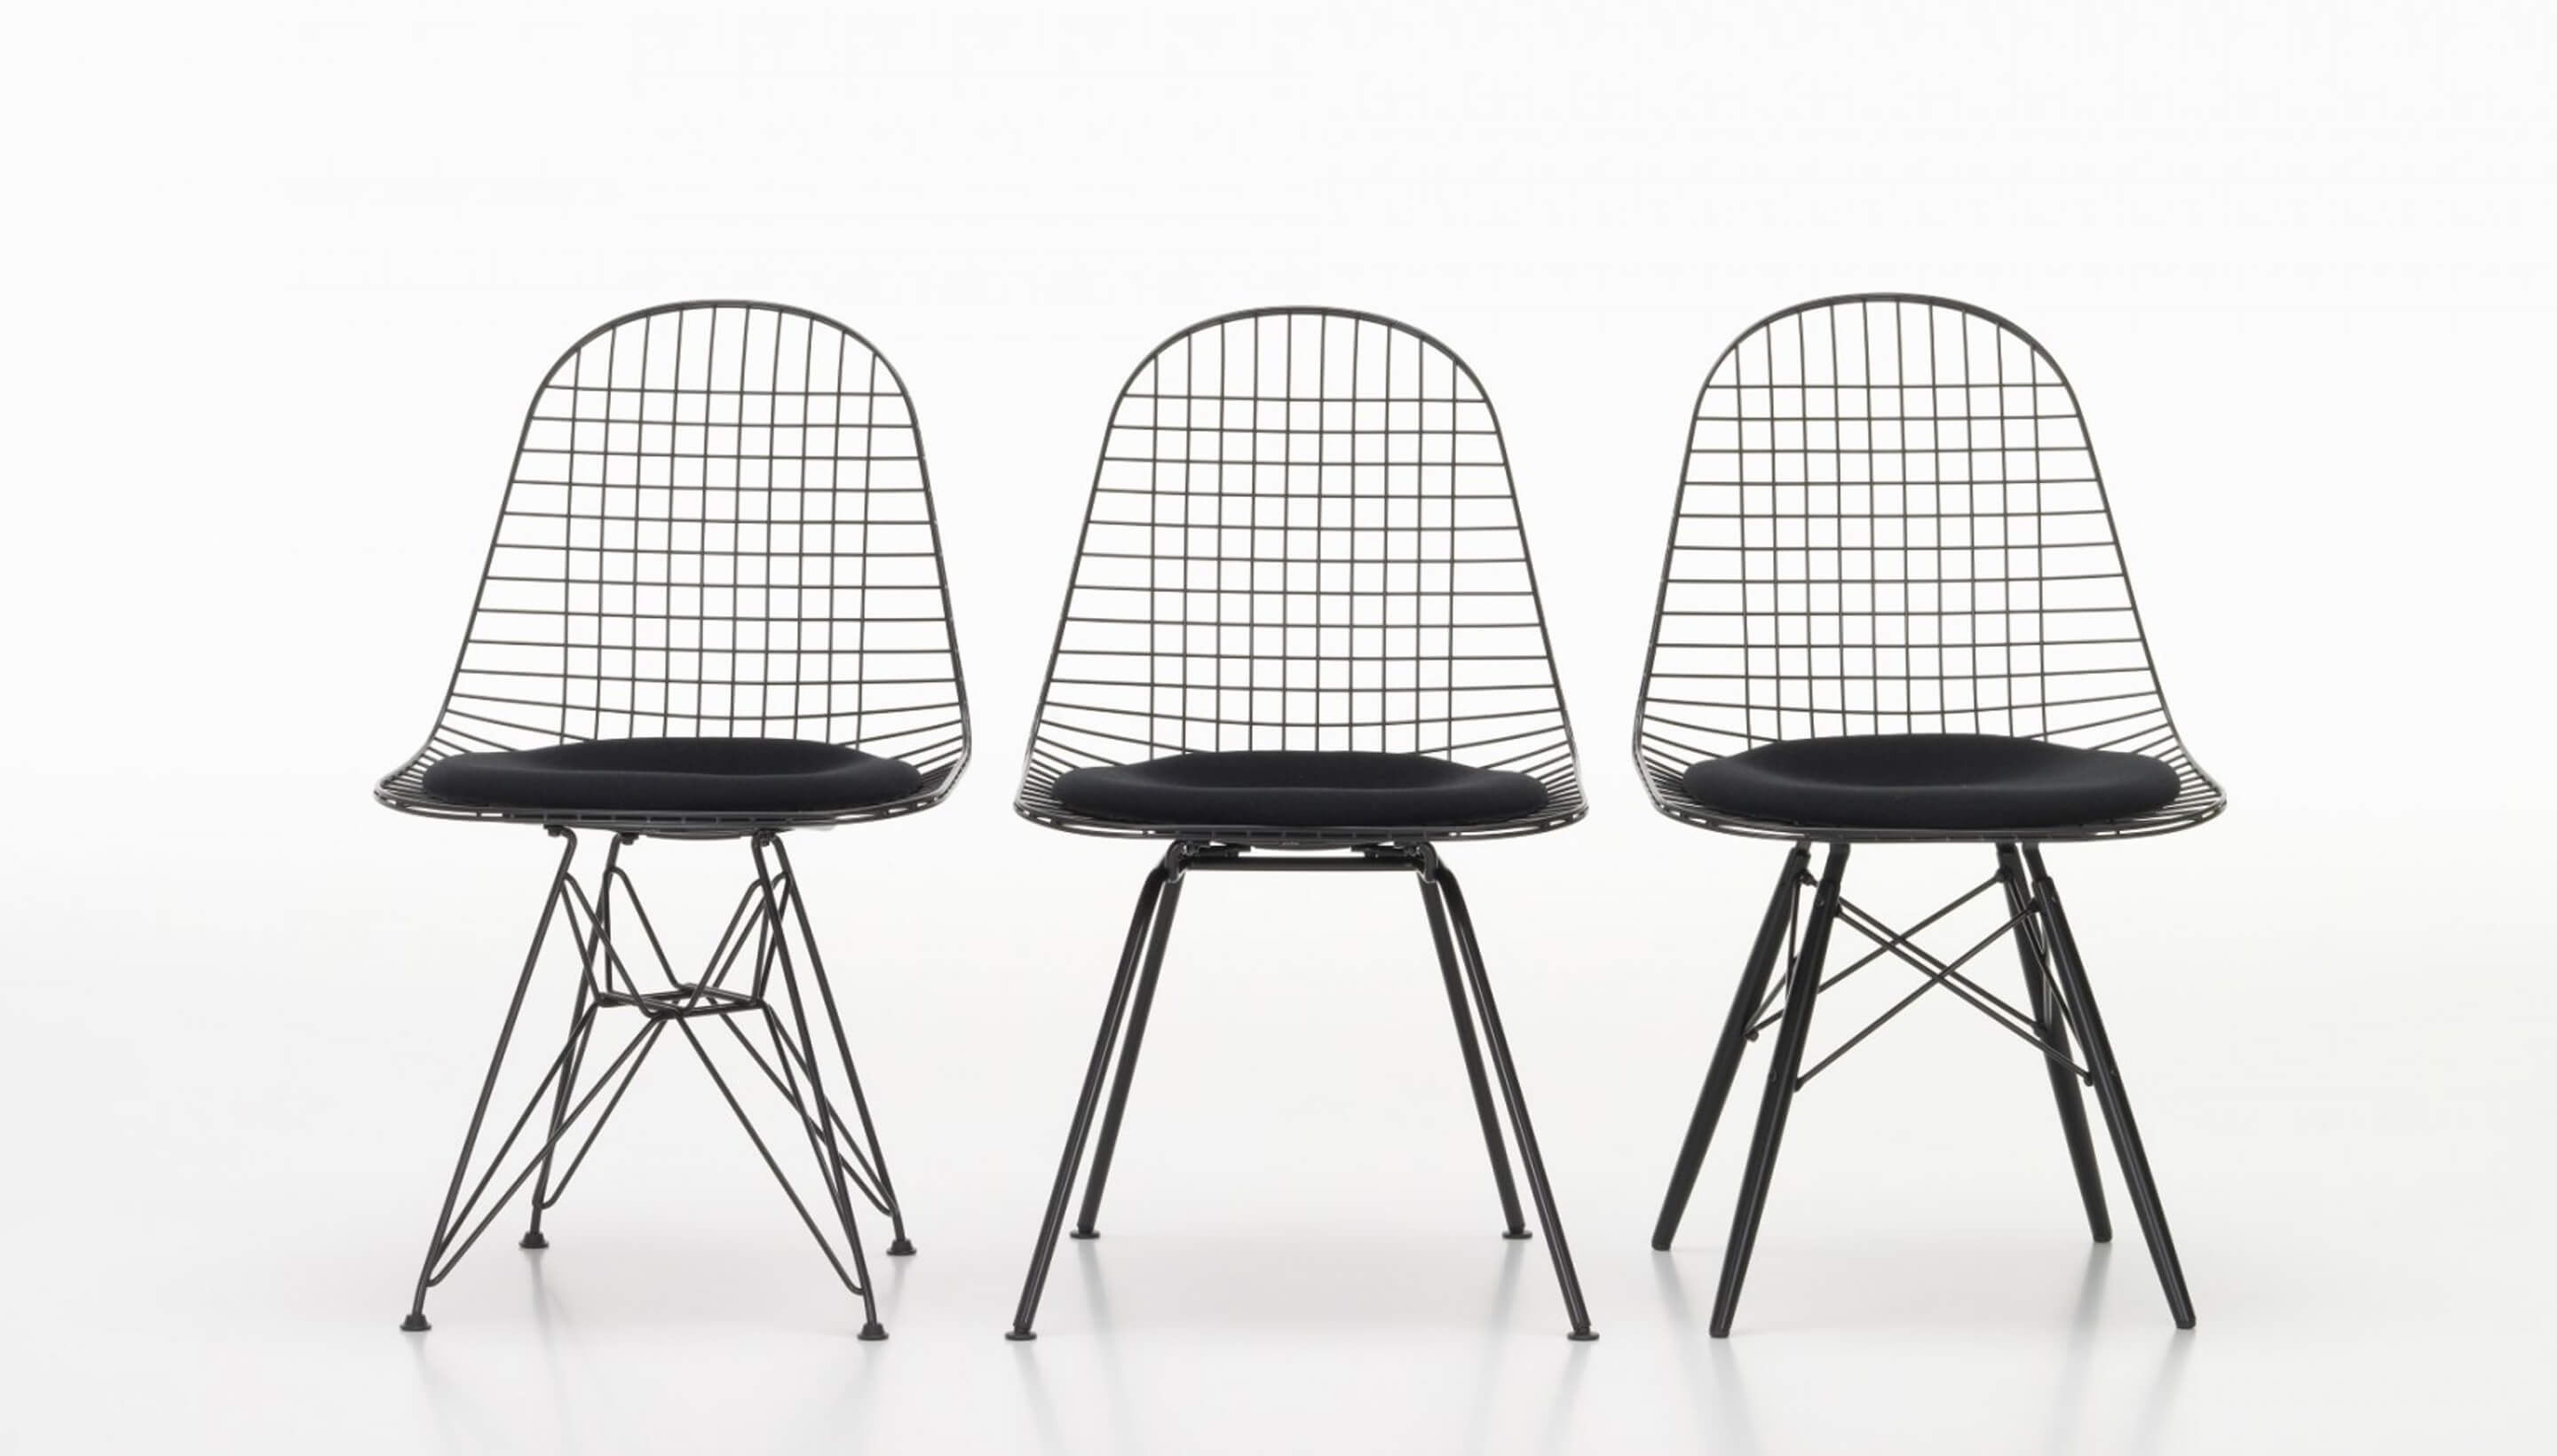 brun wirechair by amanda archello chair product lilholt wire